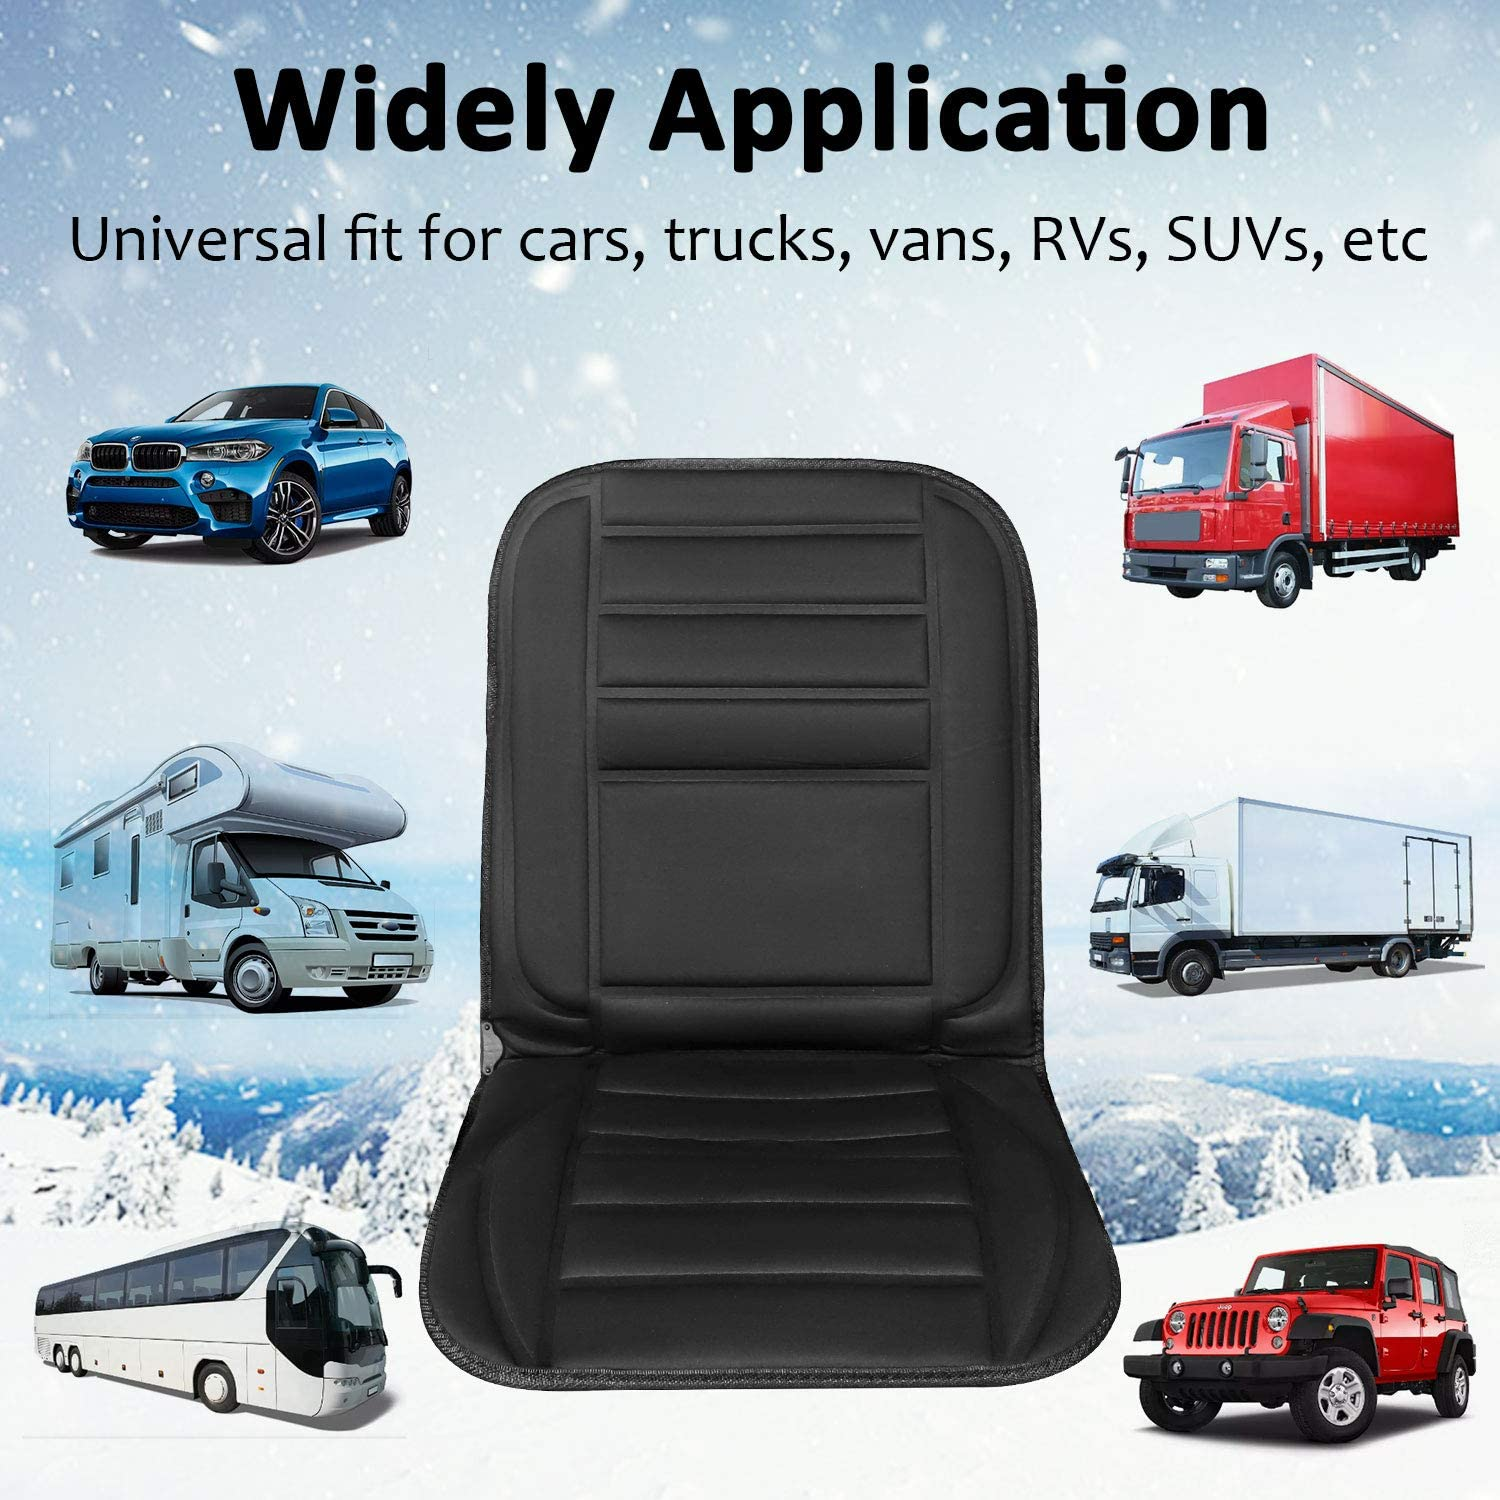 Heated Seat Cover for Car//Truck//Home//Office Chair Use Car Seat Heater Universal 12V Car Seat Fast Warming for Cold Weather Winter Driving Safer XUELI Heated Car Seat Cushion